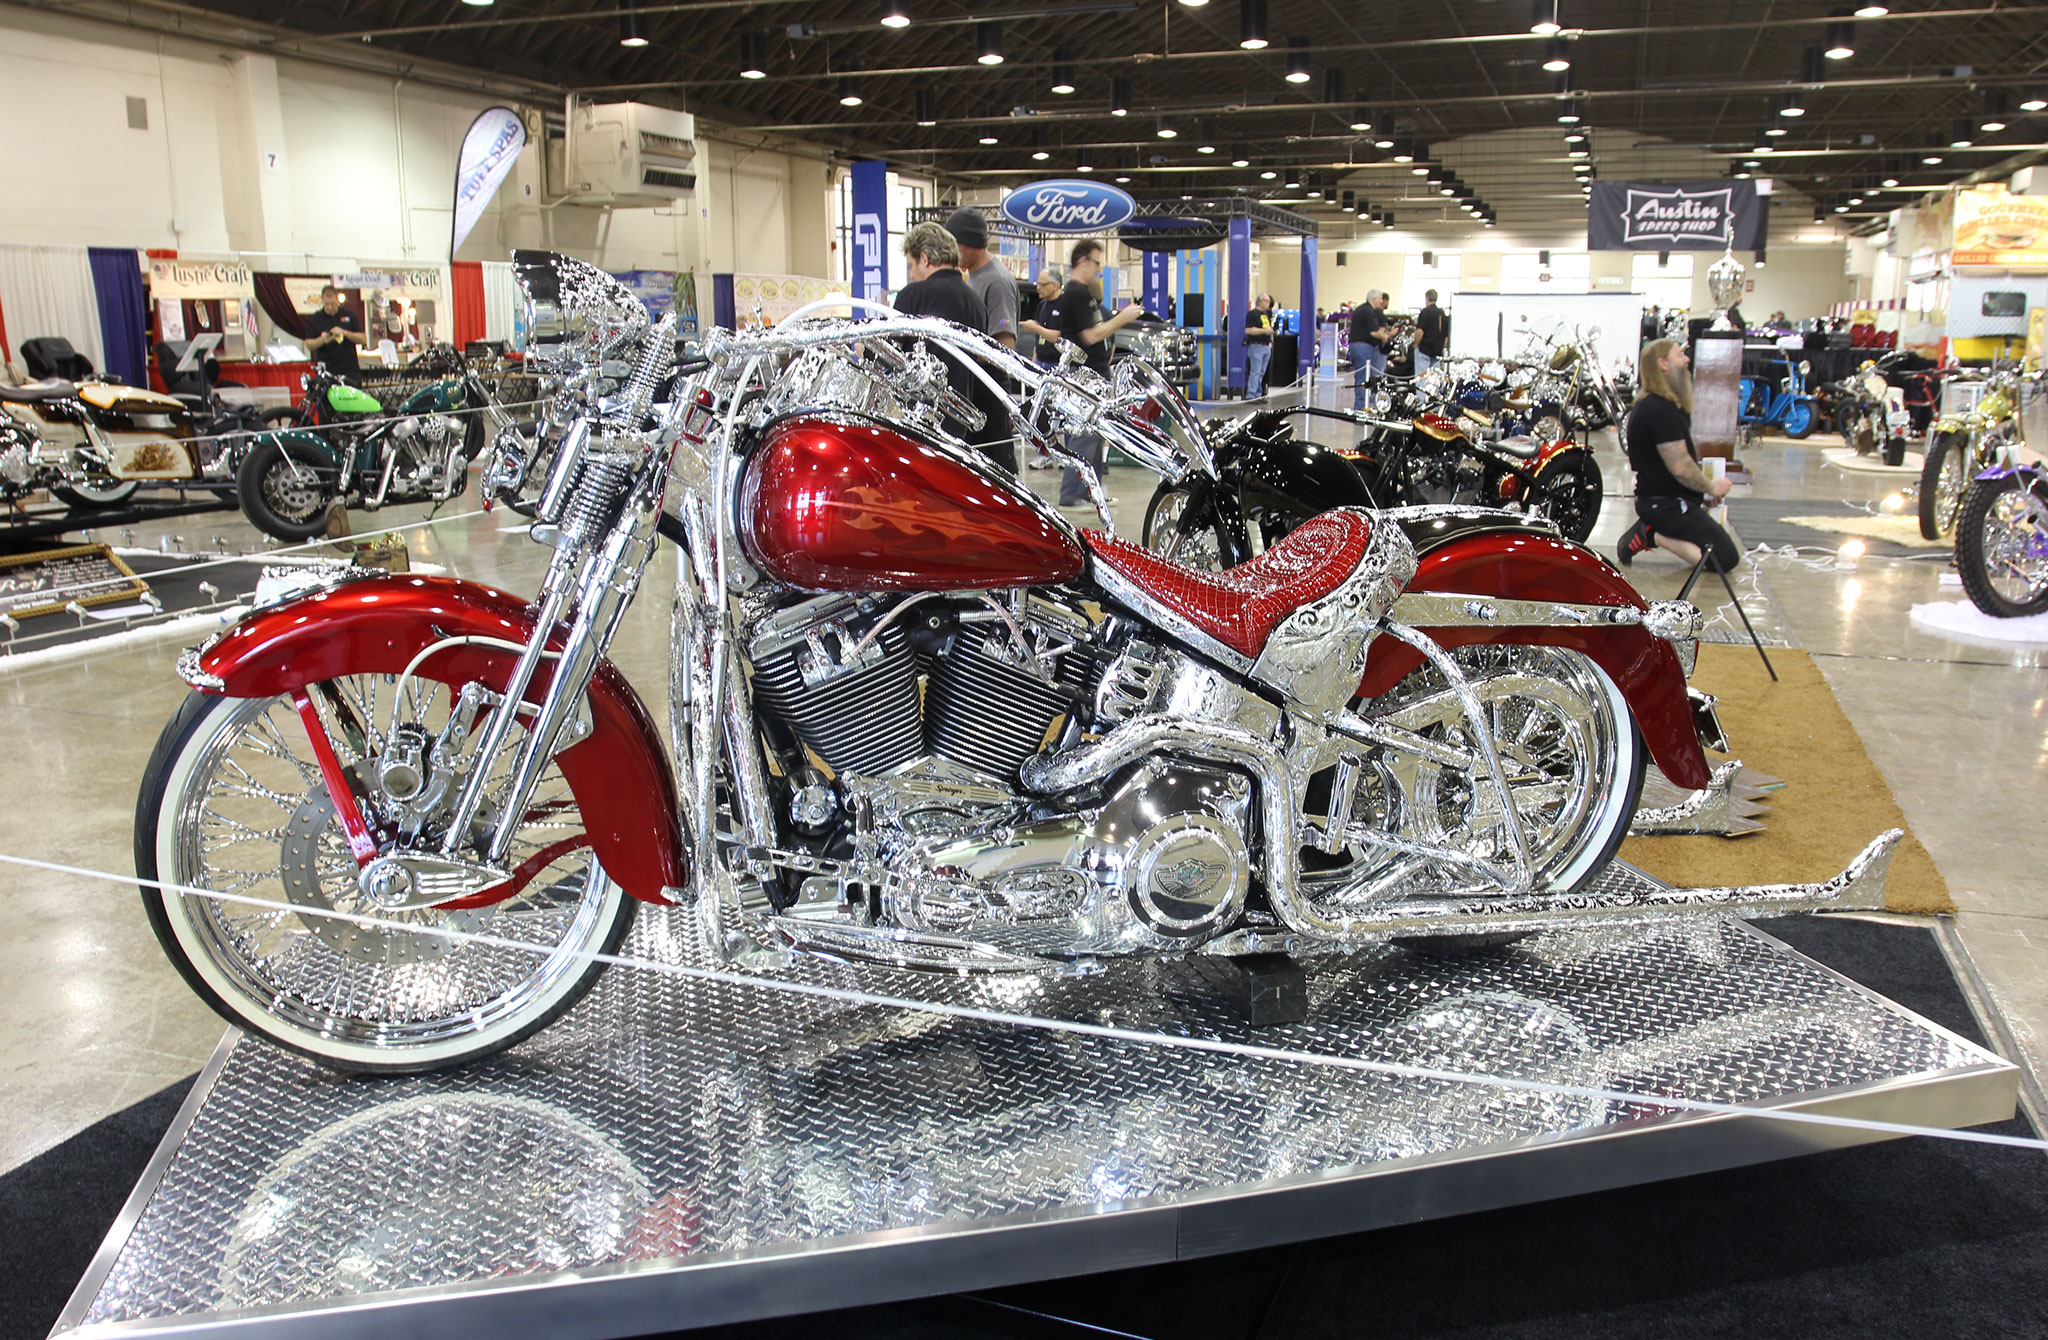 2015 Chevy Monte Carlo >> Motorcycles of the Grand National Roadster Show - Lowrider